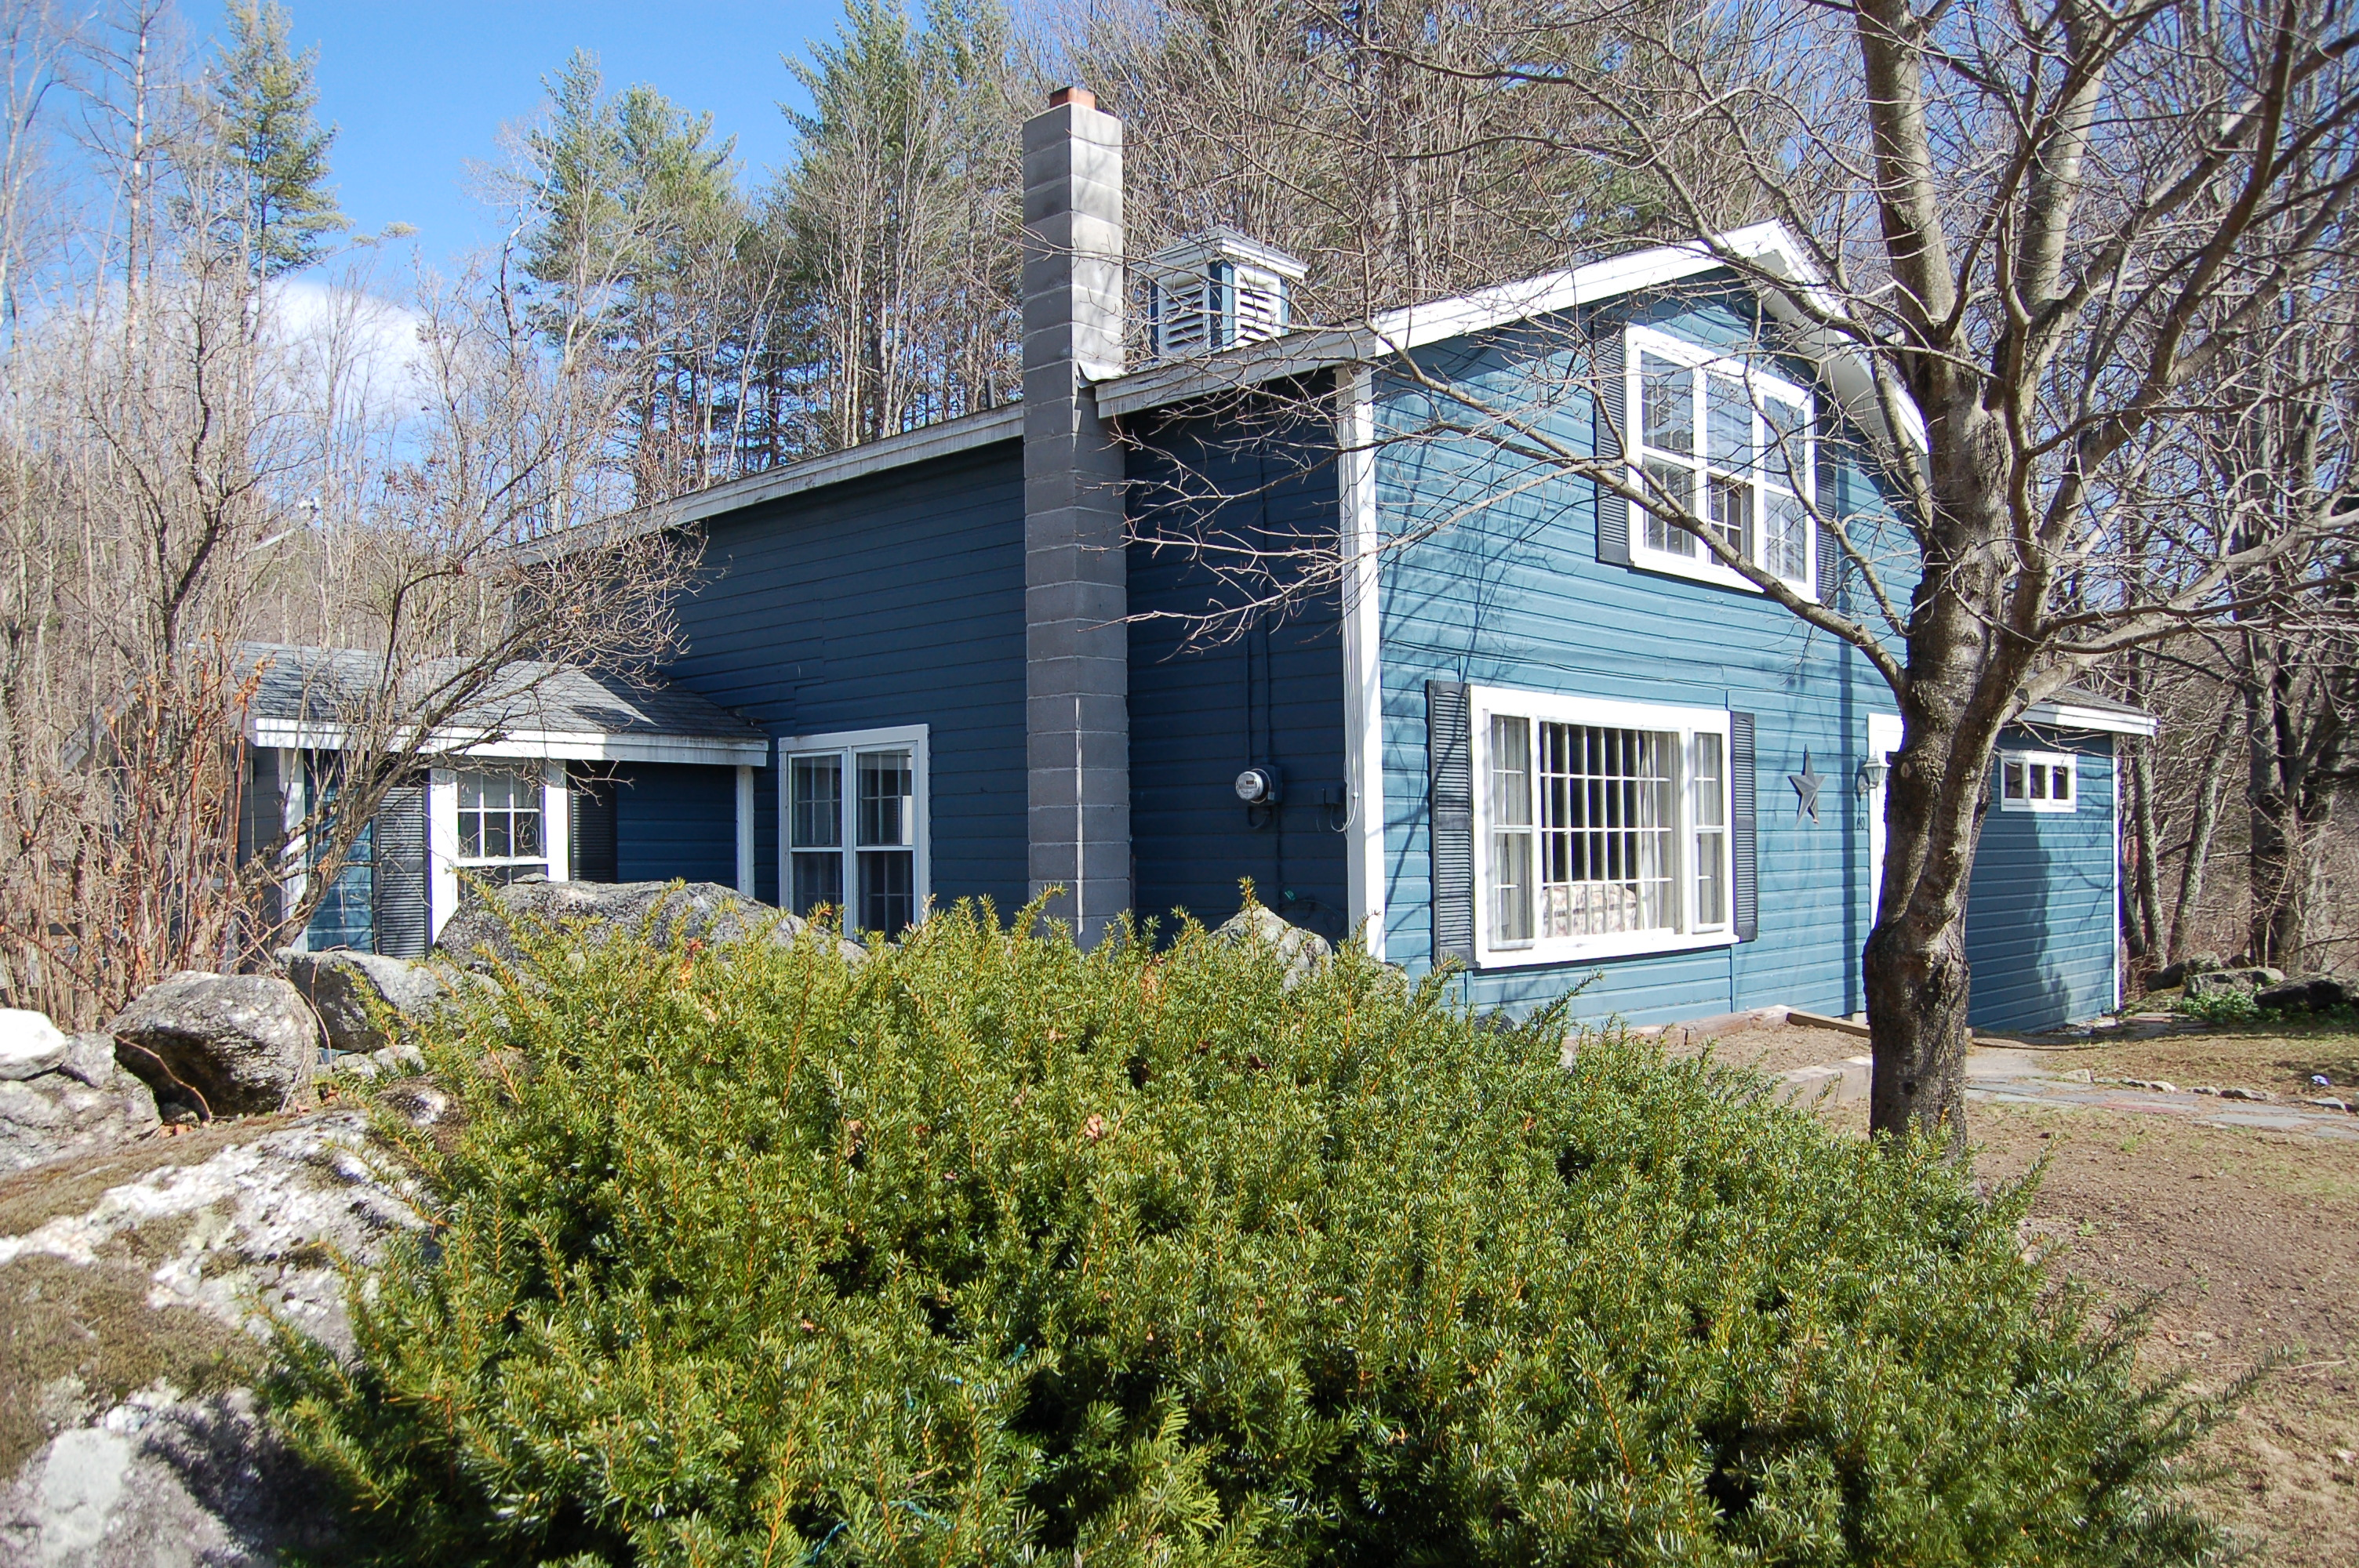 Single Family Home for Sale at 60 Campground Road, Wilmot 60 Campground Rd Wilmot, New Hampshire 03287 United States